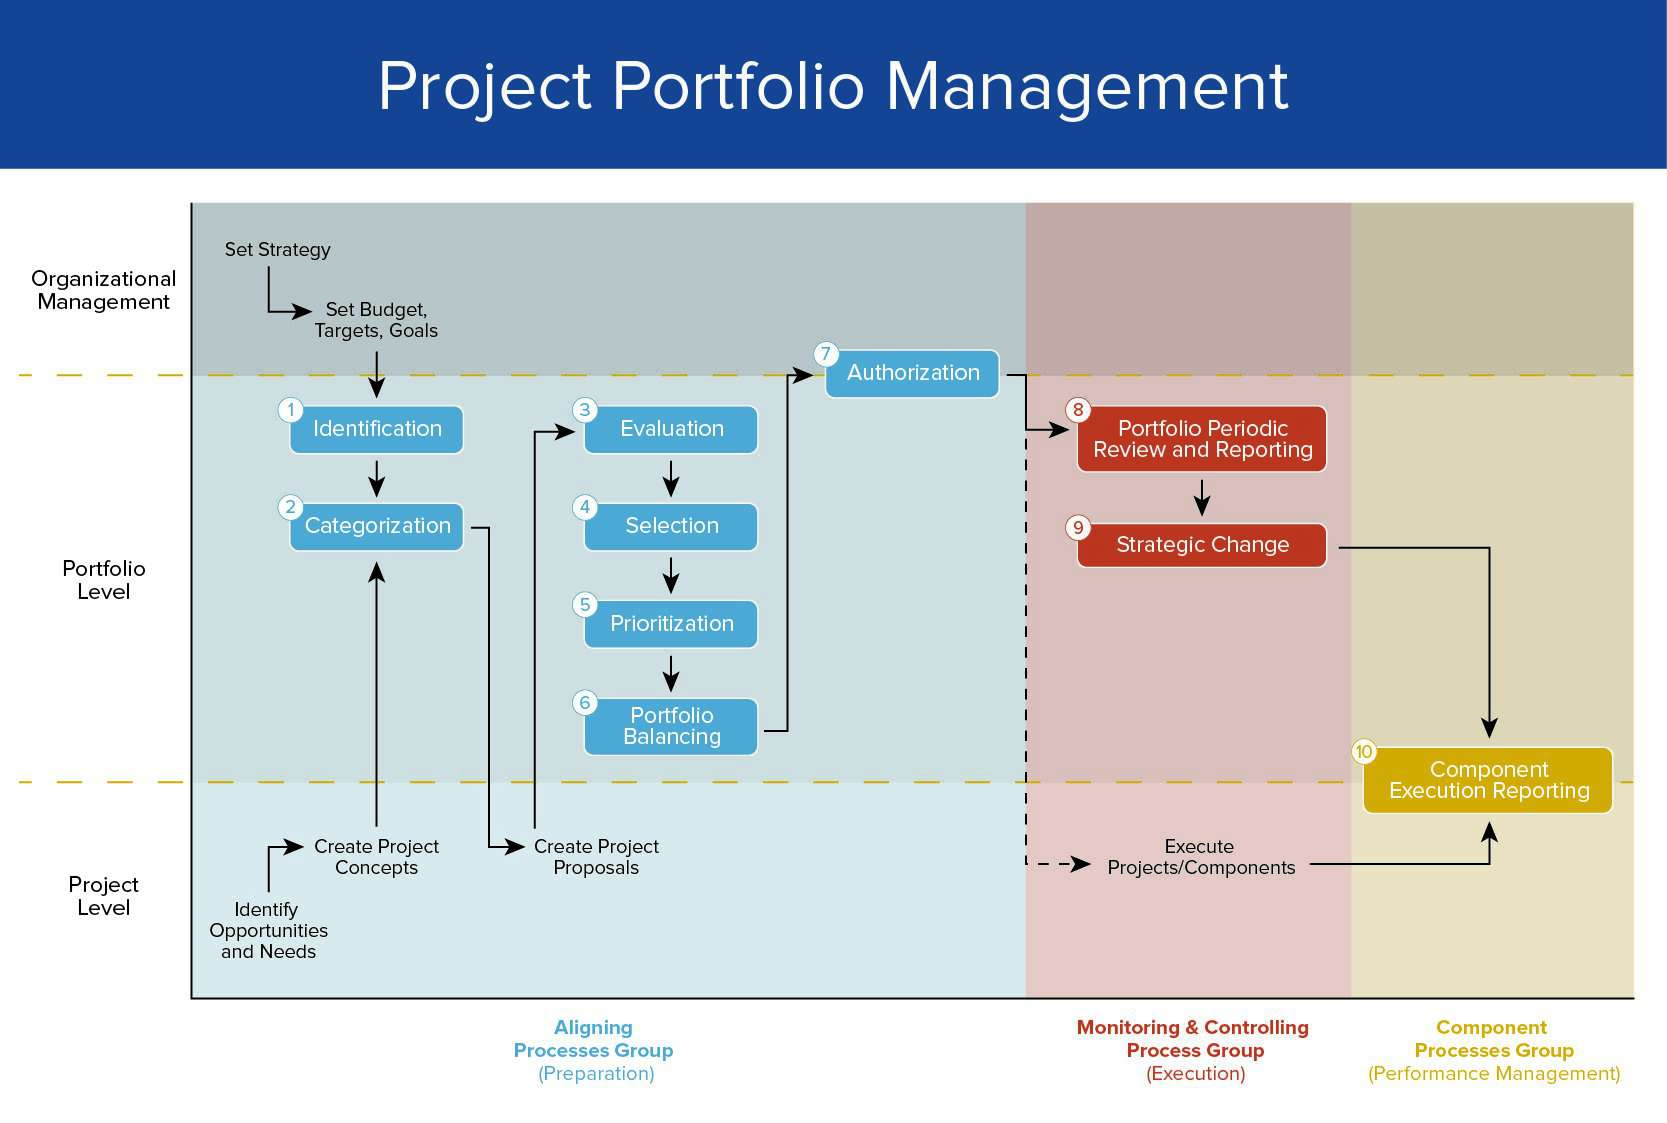 Project Portfolio Management Phases